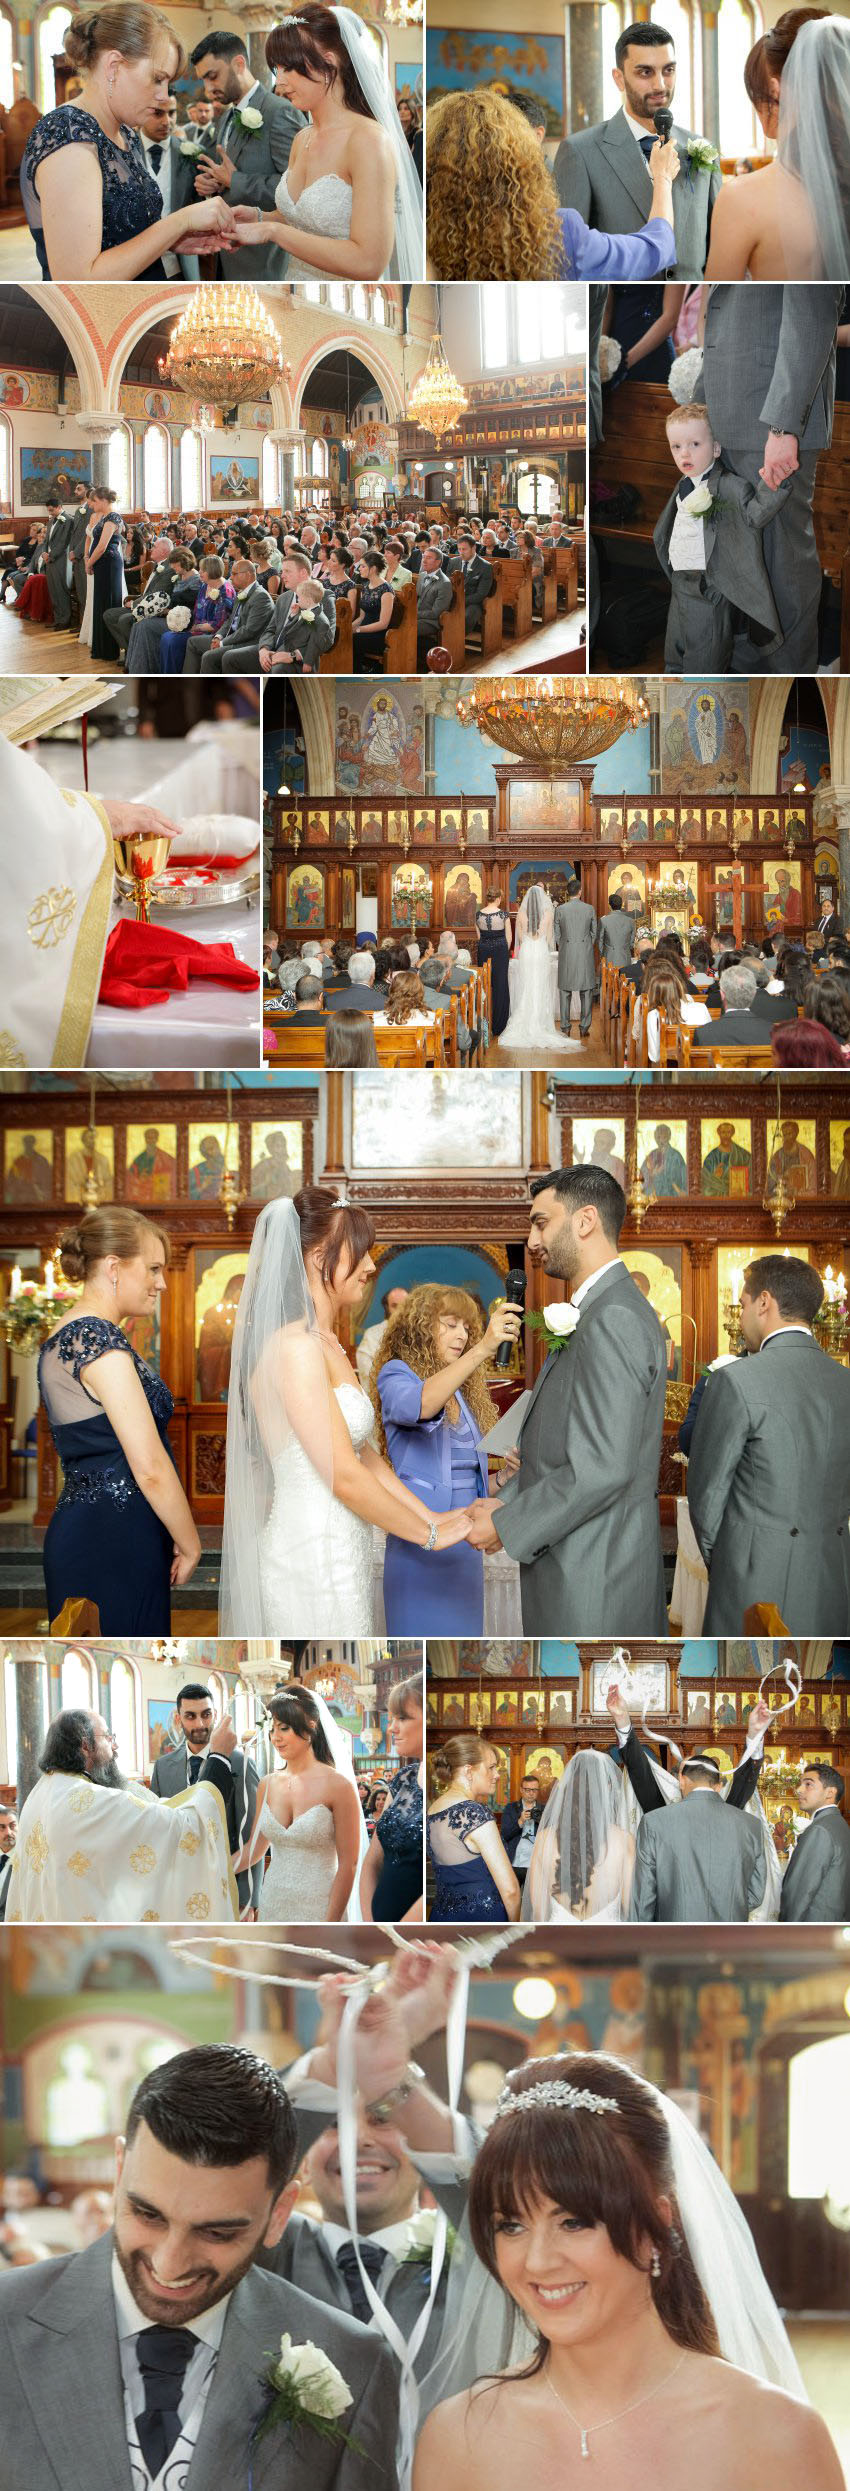 08 Wedding at Selsdon Estate, South Croydon